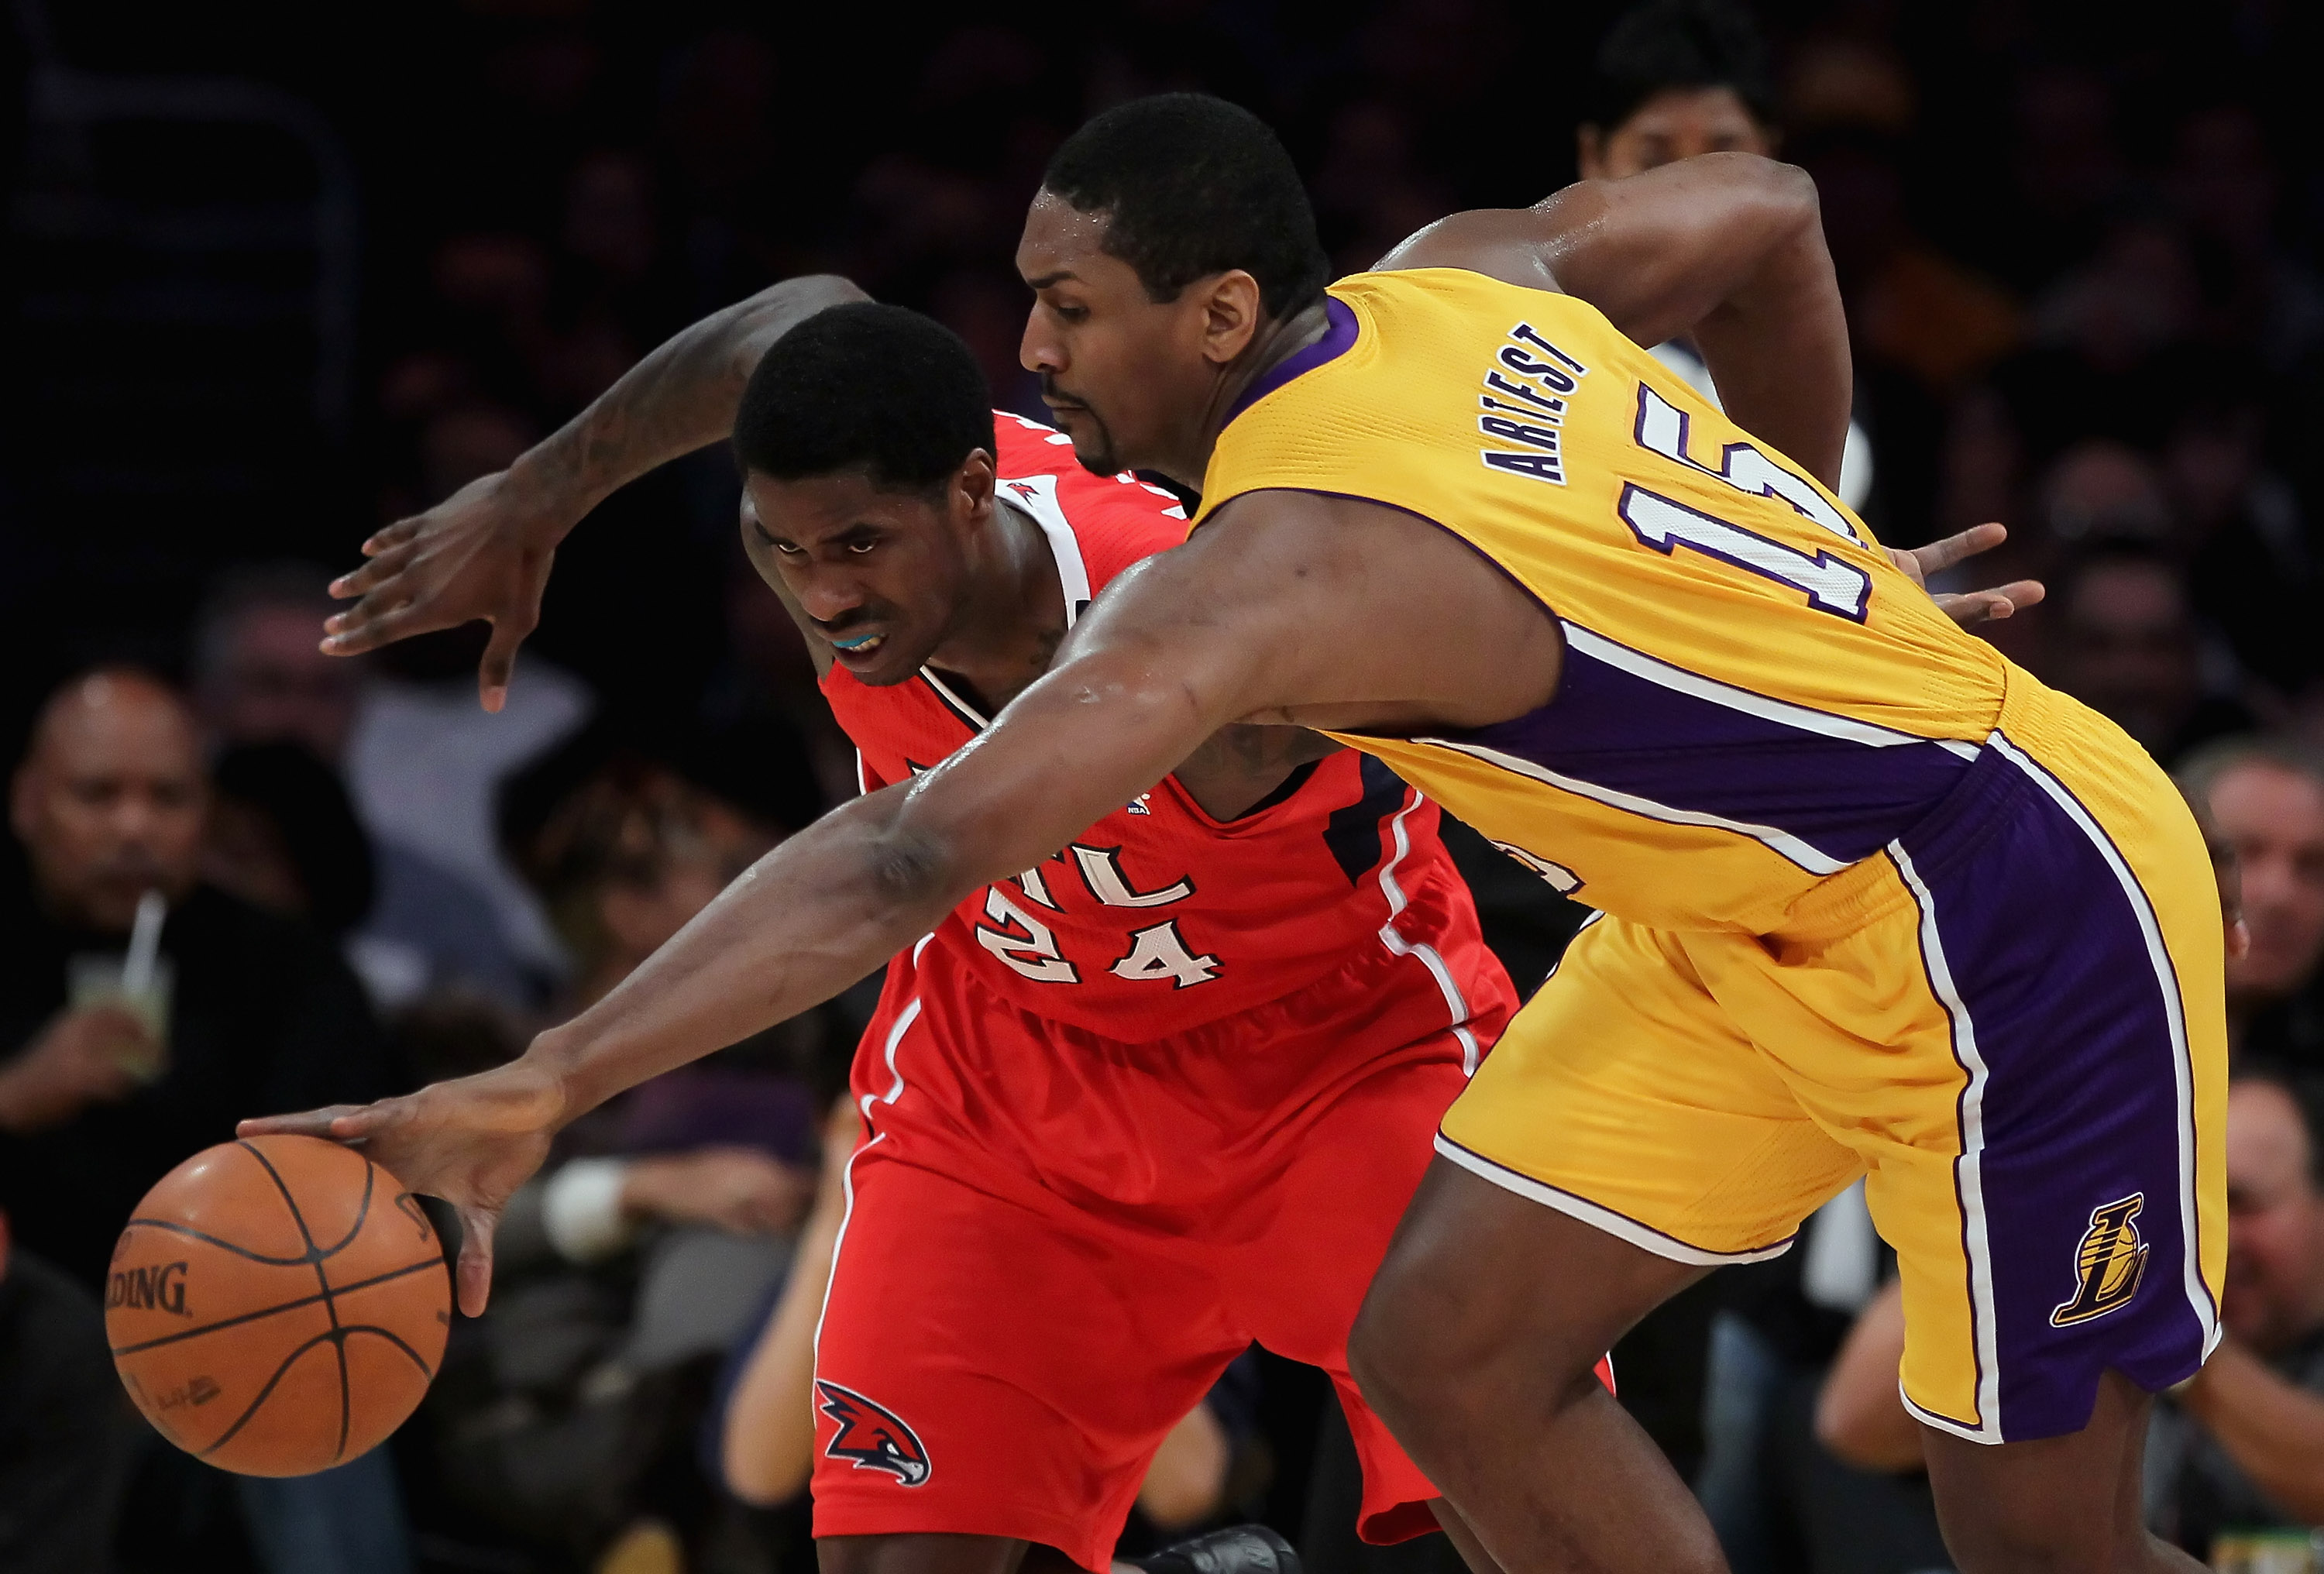 LOS ANGELES, CA - FEBRUARY 22:  Ron Artest #15 of the Los Angeles Lakers steals the ball from Marvin Williams #24 of the Atlanta Hawks in the first half at Staples Center on February 22, 2011 in Los Angeles, California. The Lakers defeated the Hawks 104-8